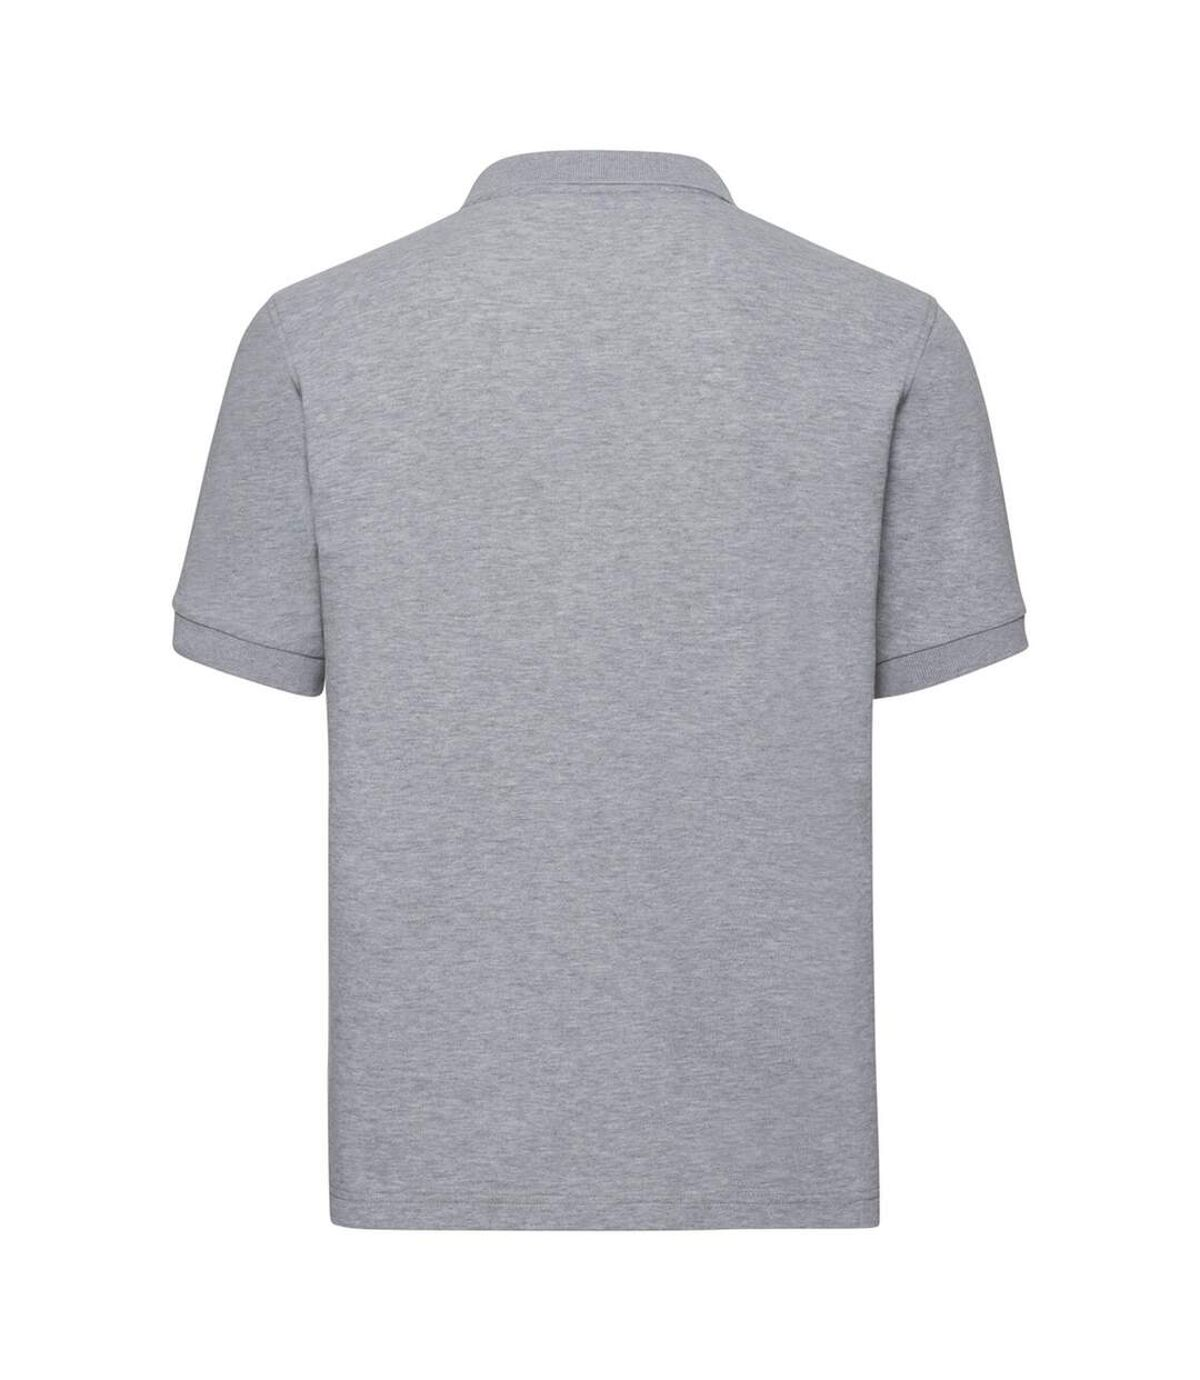 Russell Mens Tailored Stretch Pique Polo Shirt (Light Oxford Grey) - UTPC3570